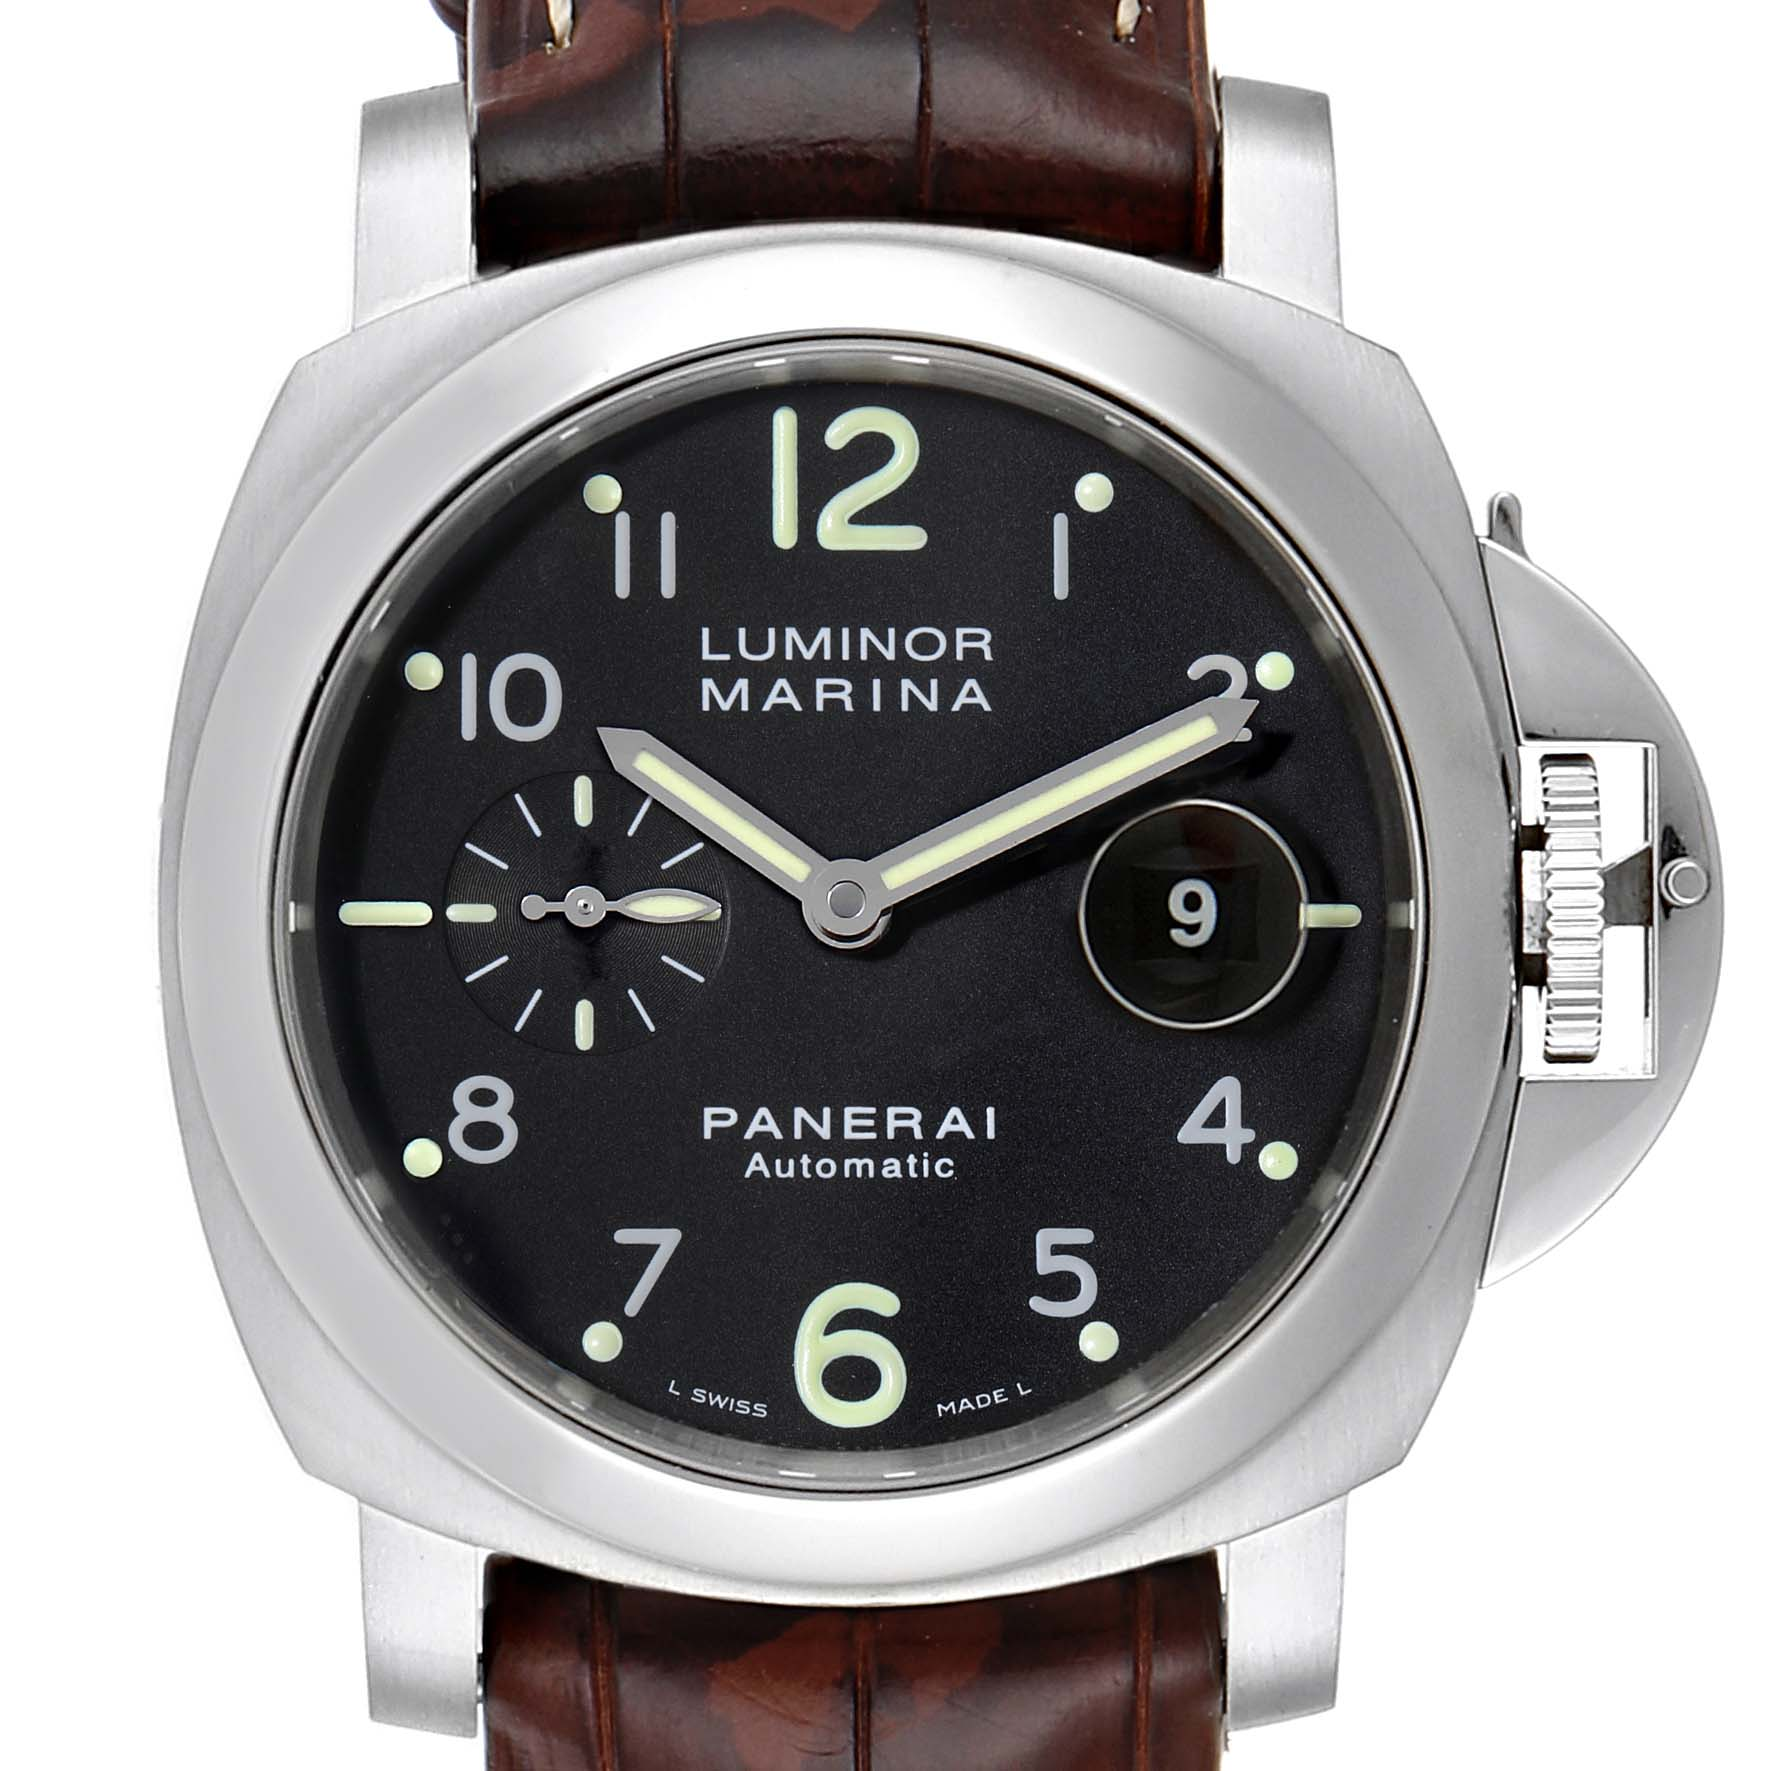 Panerai Luminor Marina 44mm Automatic Mens Watch PAM00164 PAM164